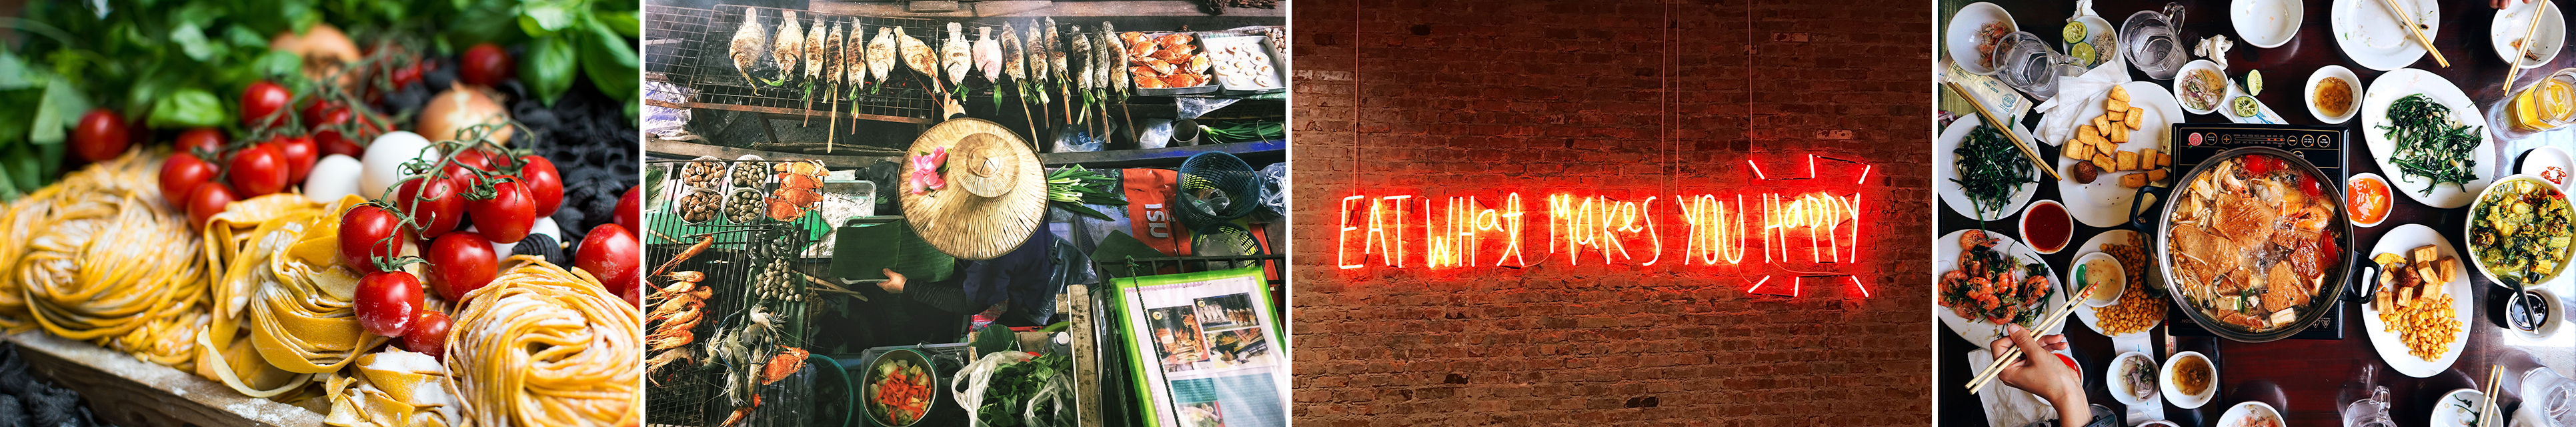 A collage of pictures including a food market cooking seafood, fresh vegetables, and a neon light sign saying Eat What Makes You Happy